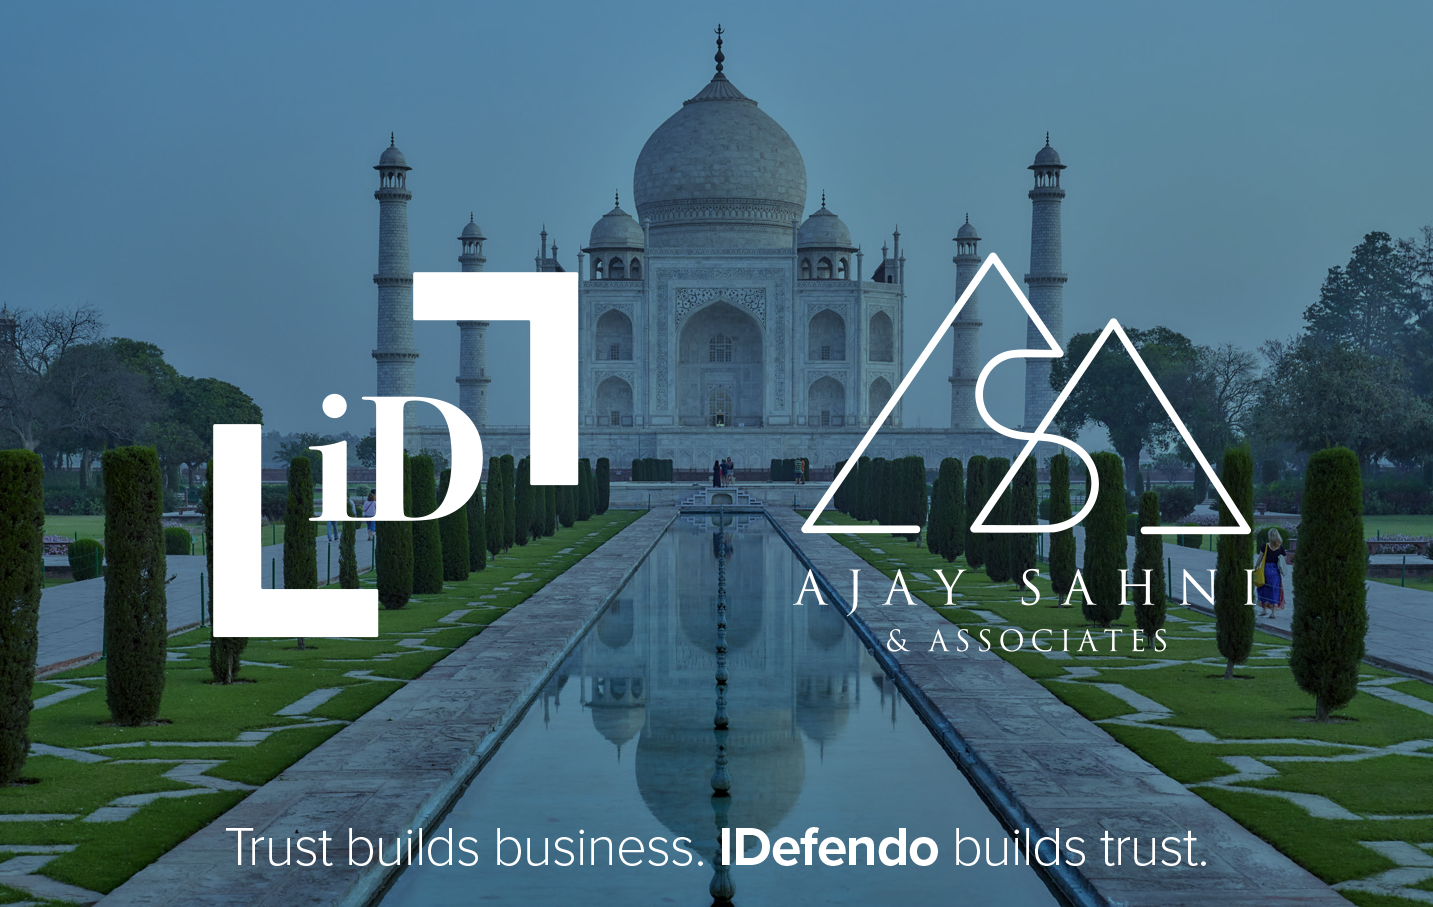 Partnership iDefendo-Ajay Sahni & Associates